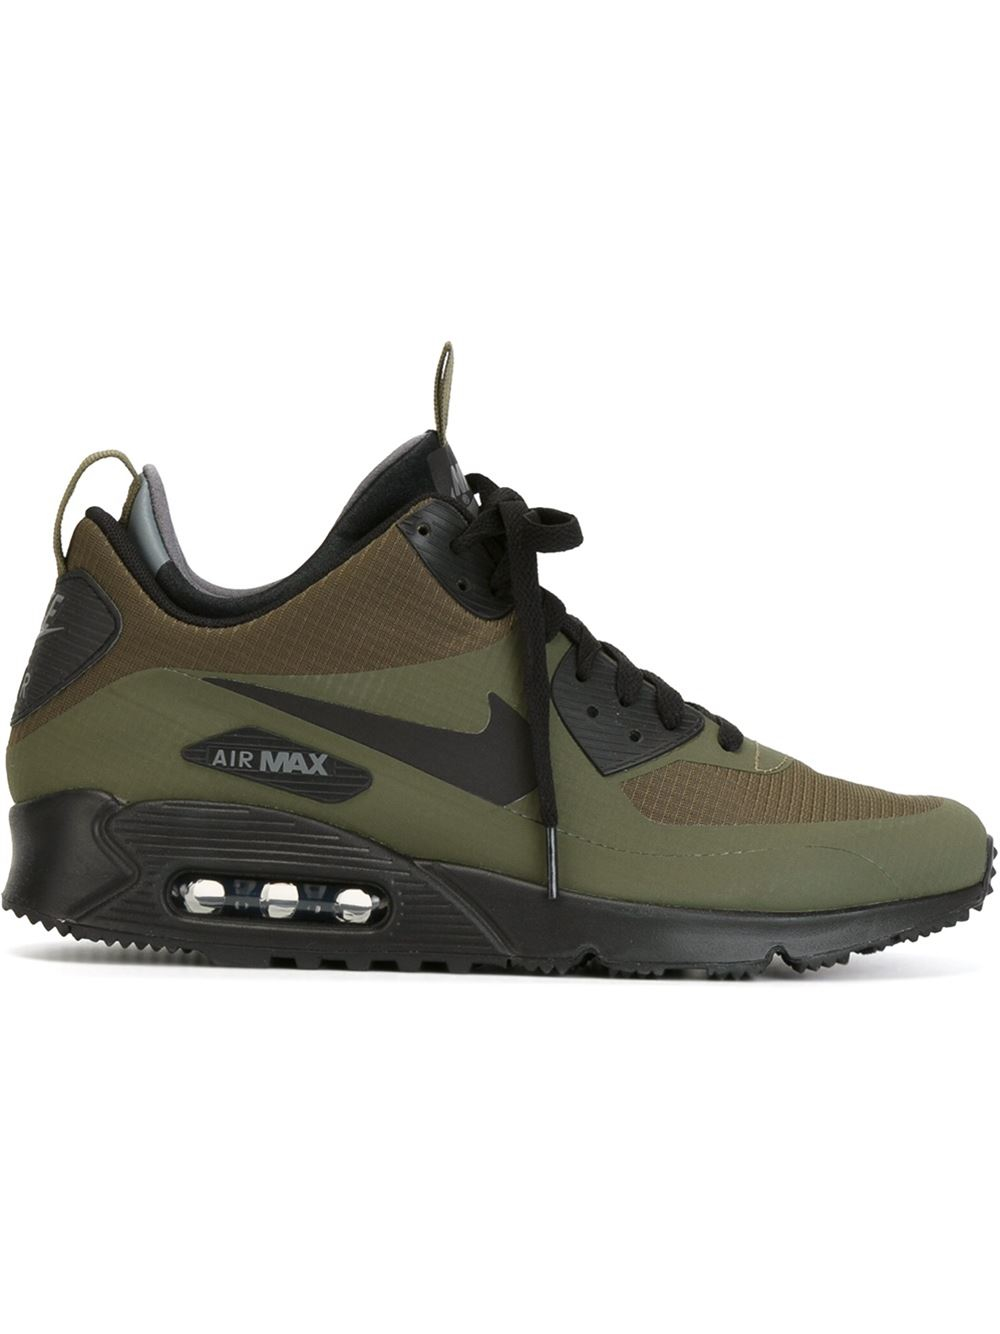 4aaf8da540 Gallery. Previously sold at: Farfetch · Men's Air Max 90 Sneakers